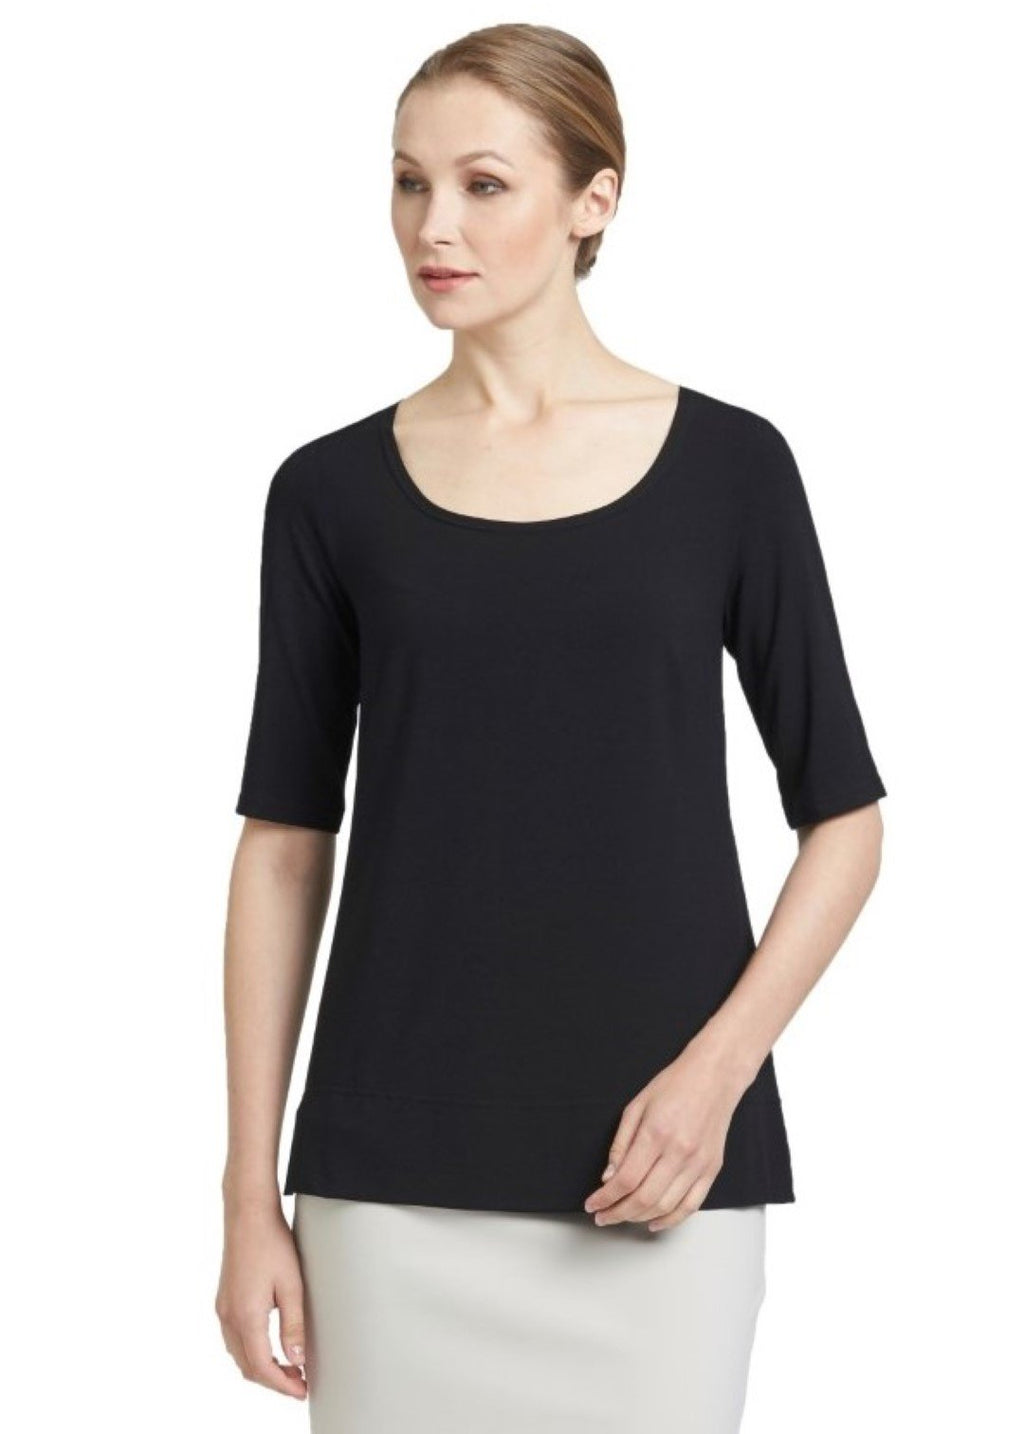 PAULA RYAN ESSENTIALS Easy Fit Half Sleeve Scoop Neck Top - MicroModal - Top - Paula Ryan Essentials - Paula Ryan